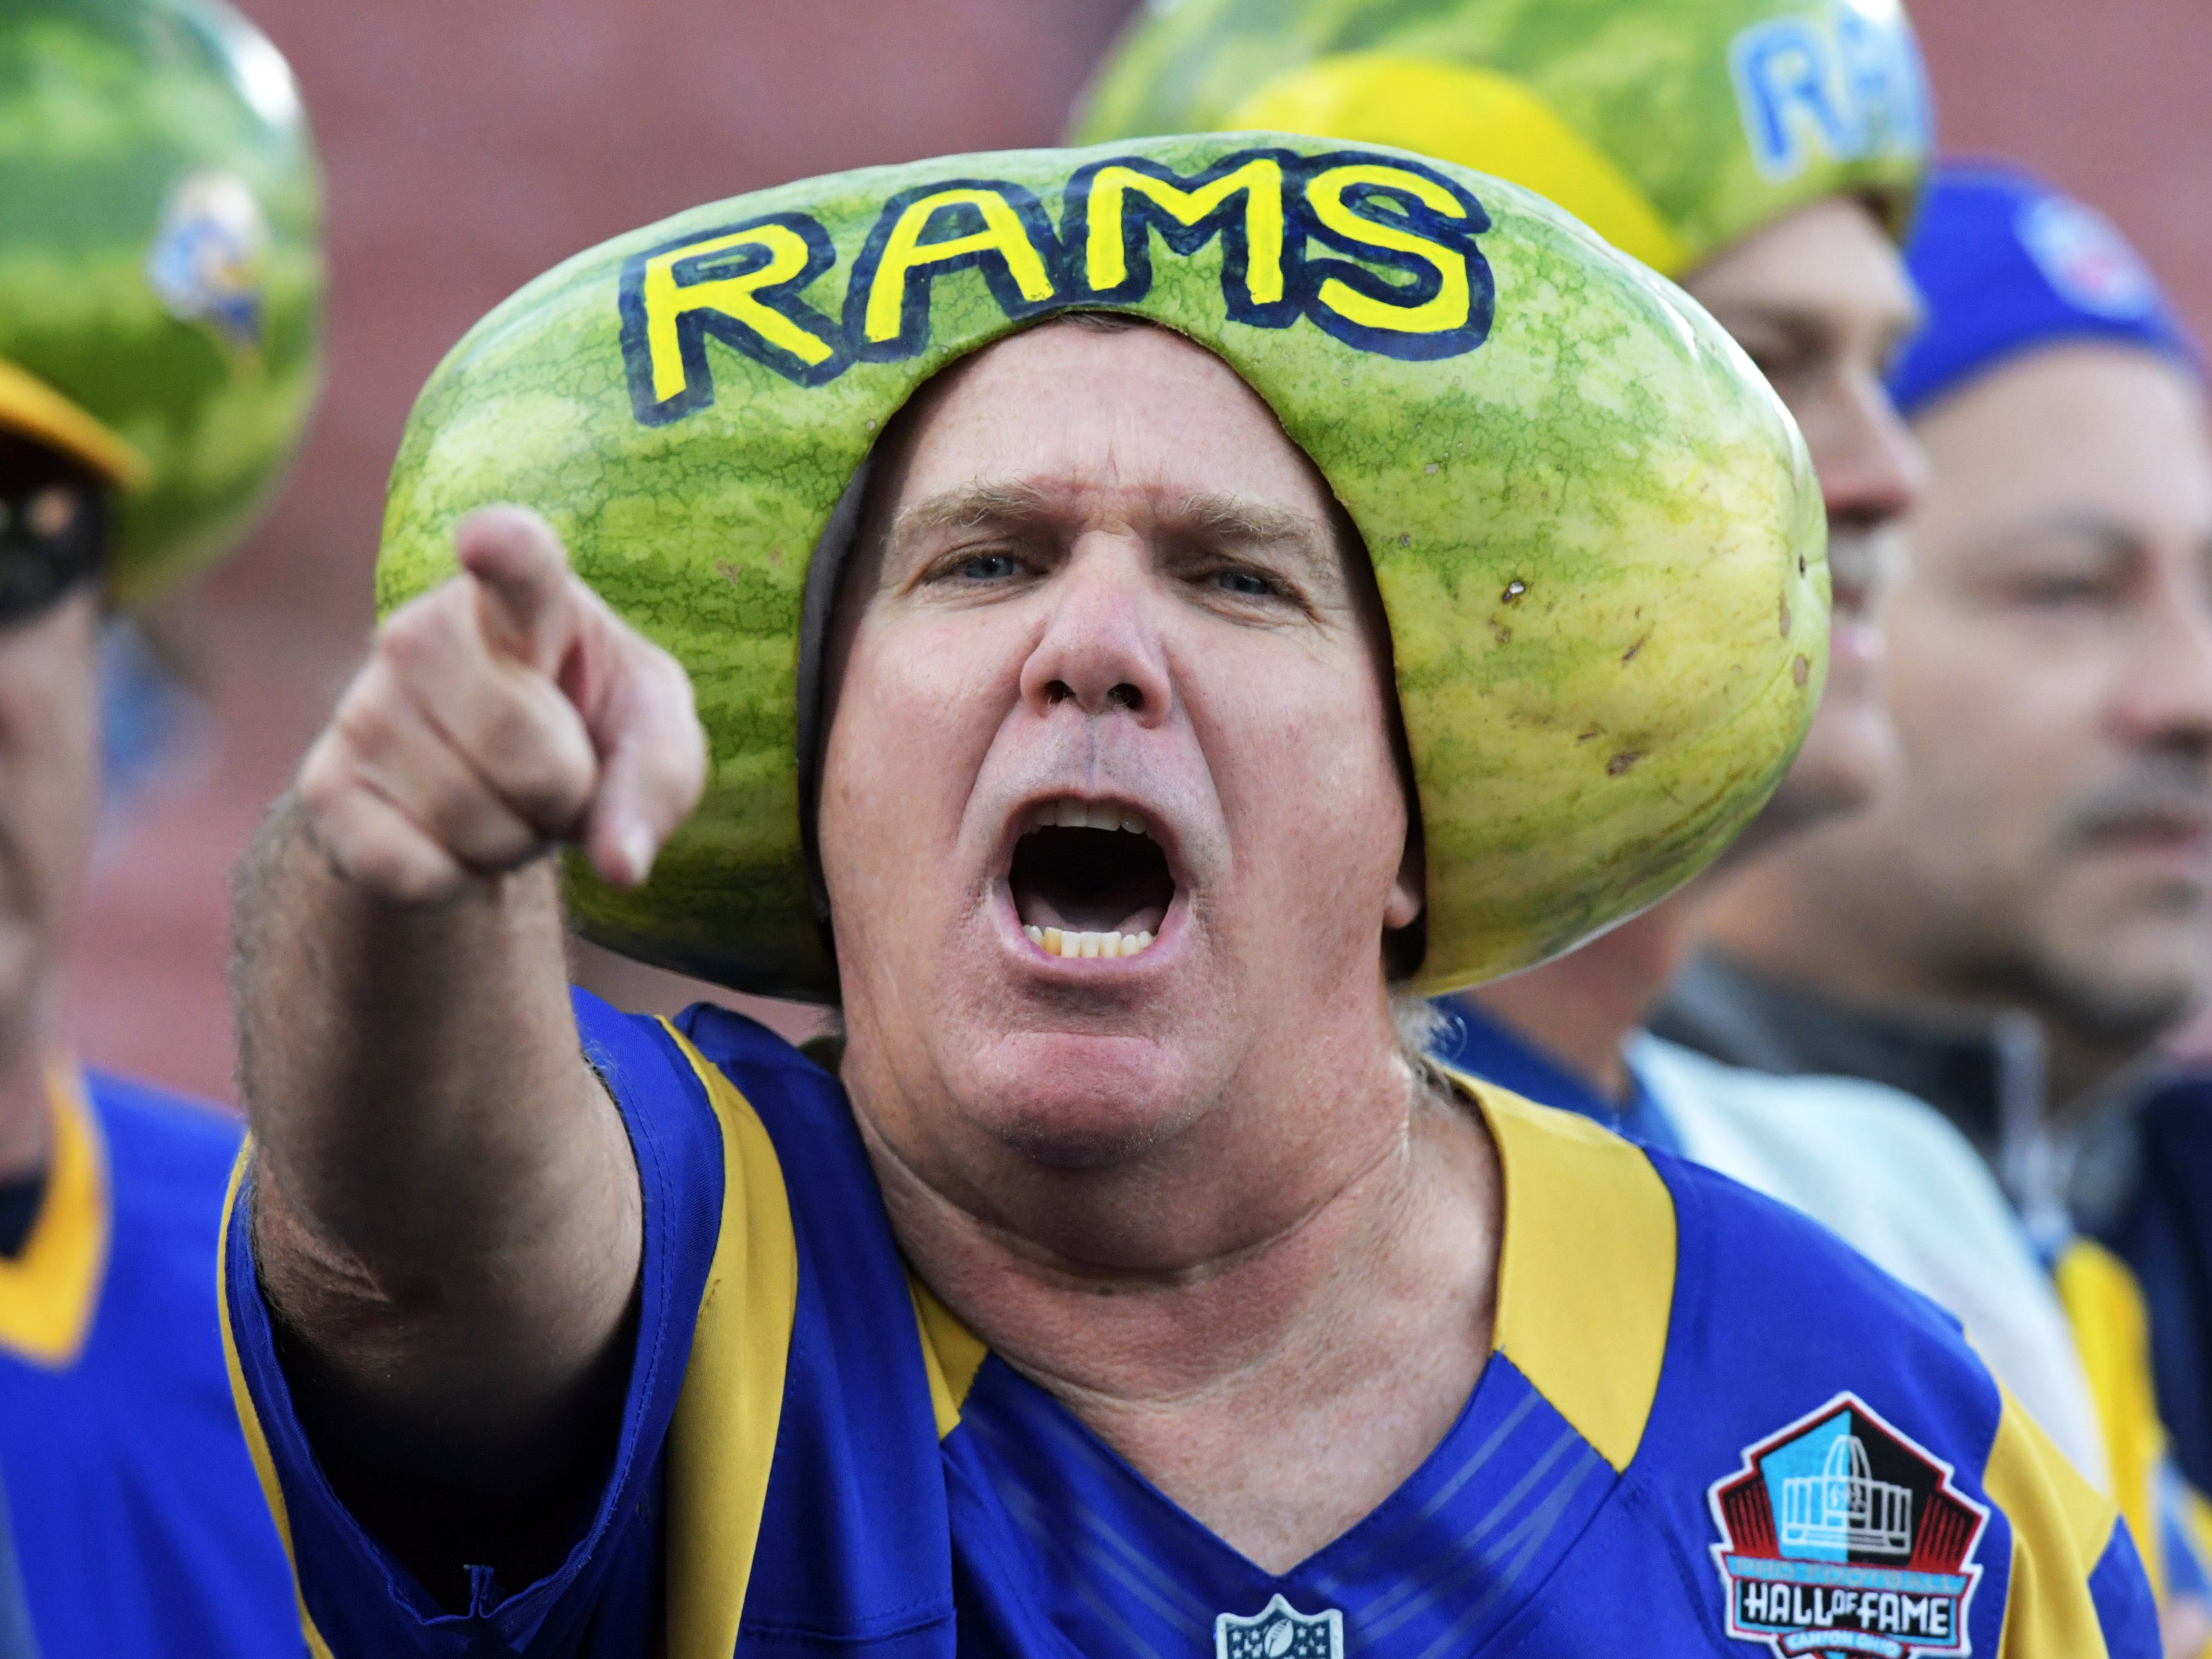 A Los Angeles Rams fan wearing a watermelon on his head reacts during the game against the Philadelphia Eagles  at Los Angeles Memorial Coliseum.